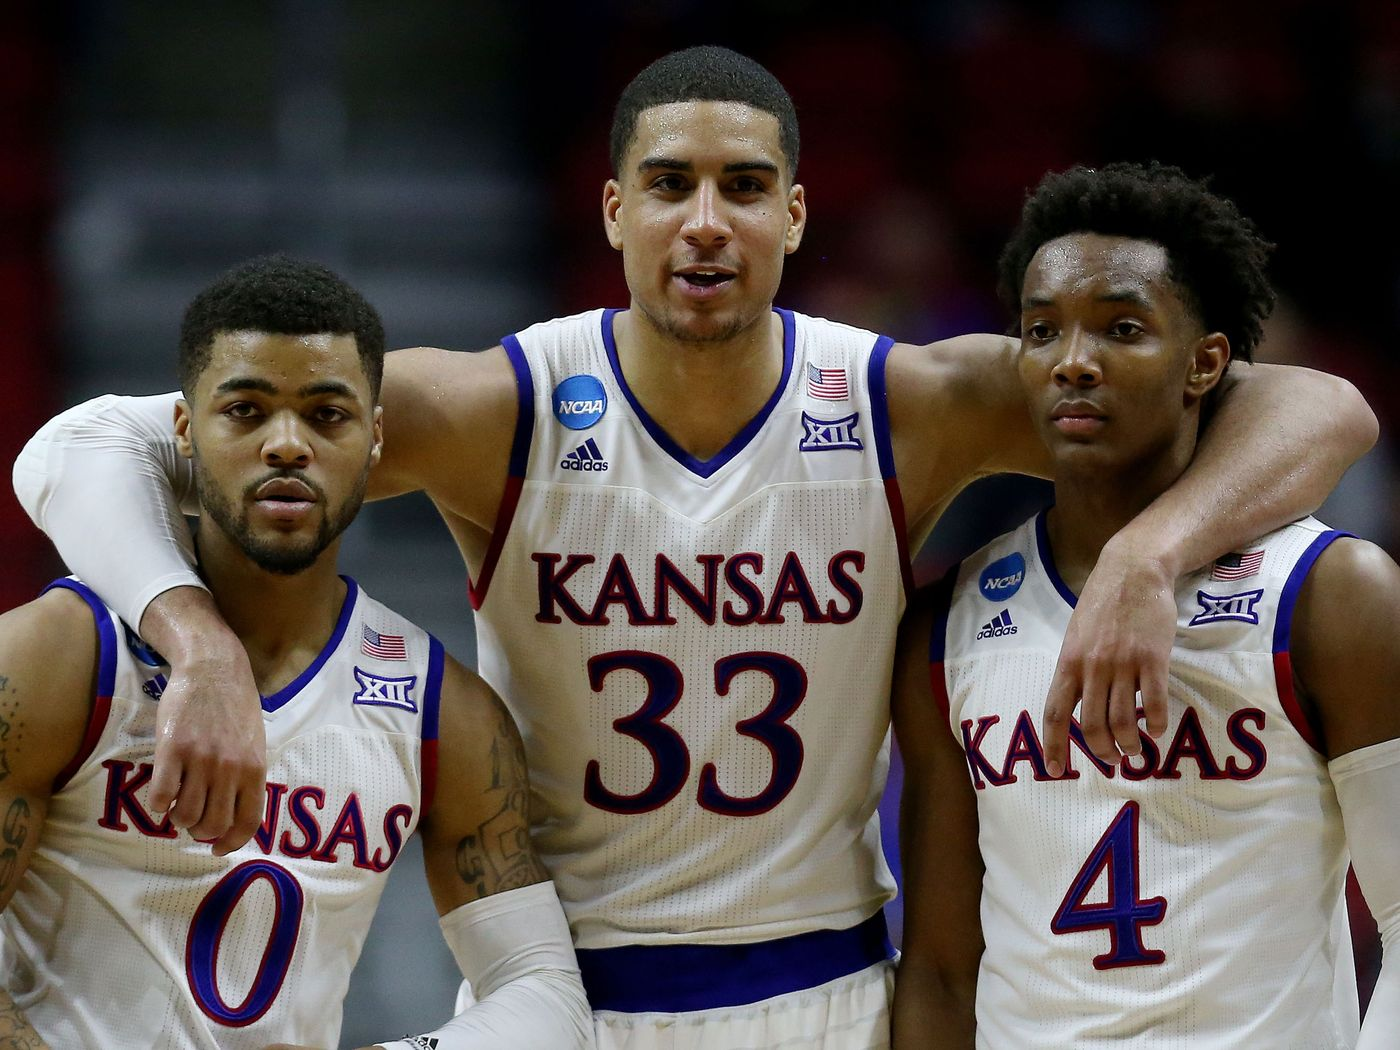 Big 12 Tournament Depth and Balance Makes It Tough to Pick ...